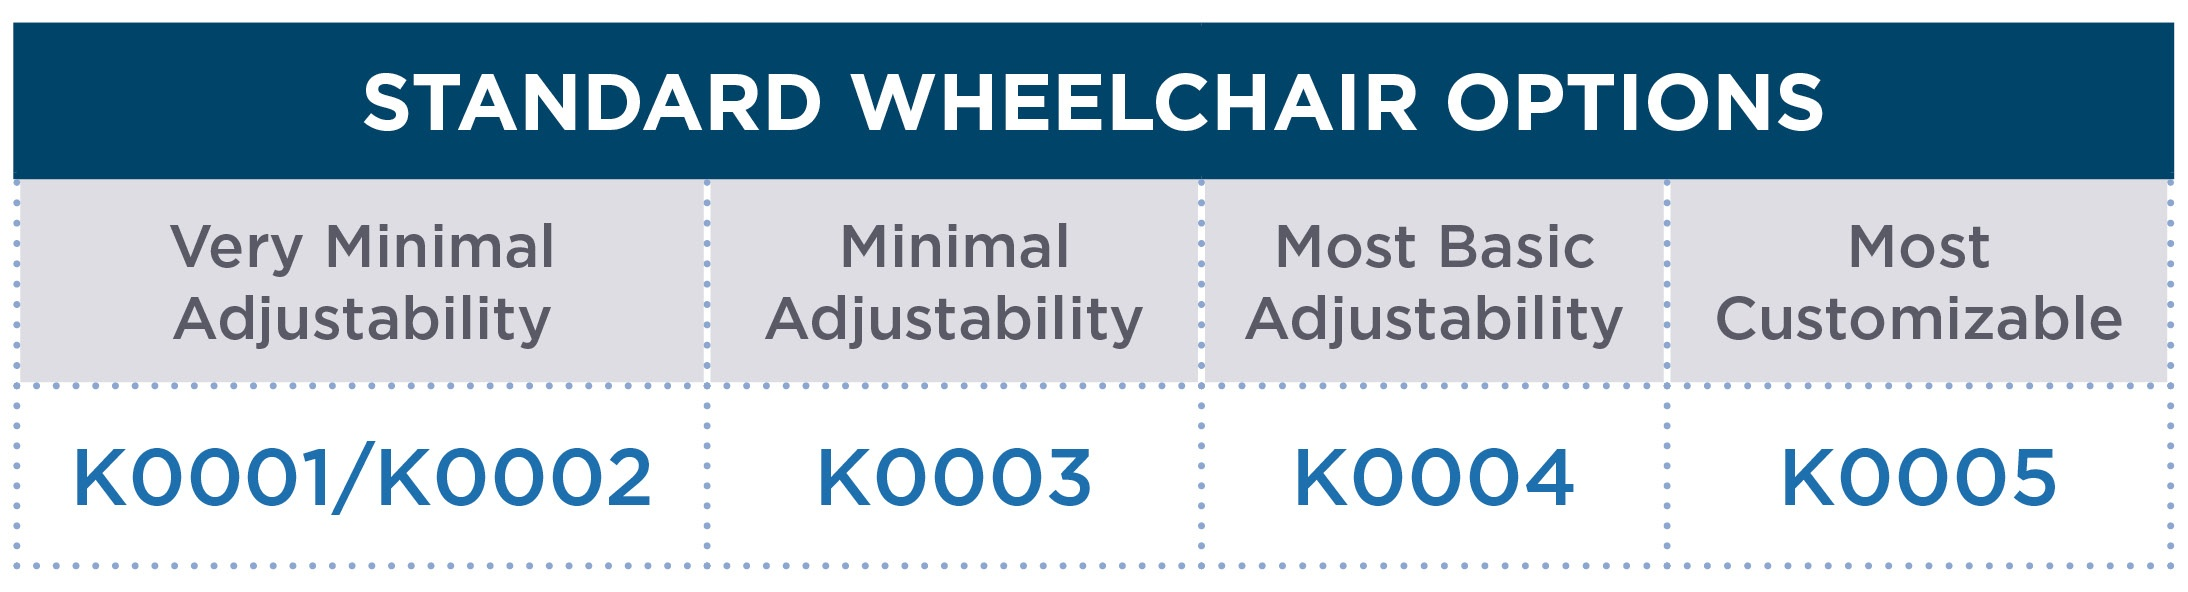 Standard Wheelchair Options Chart